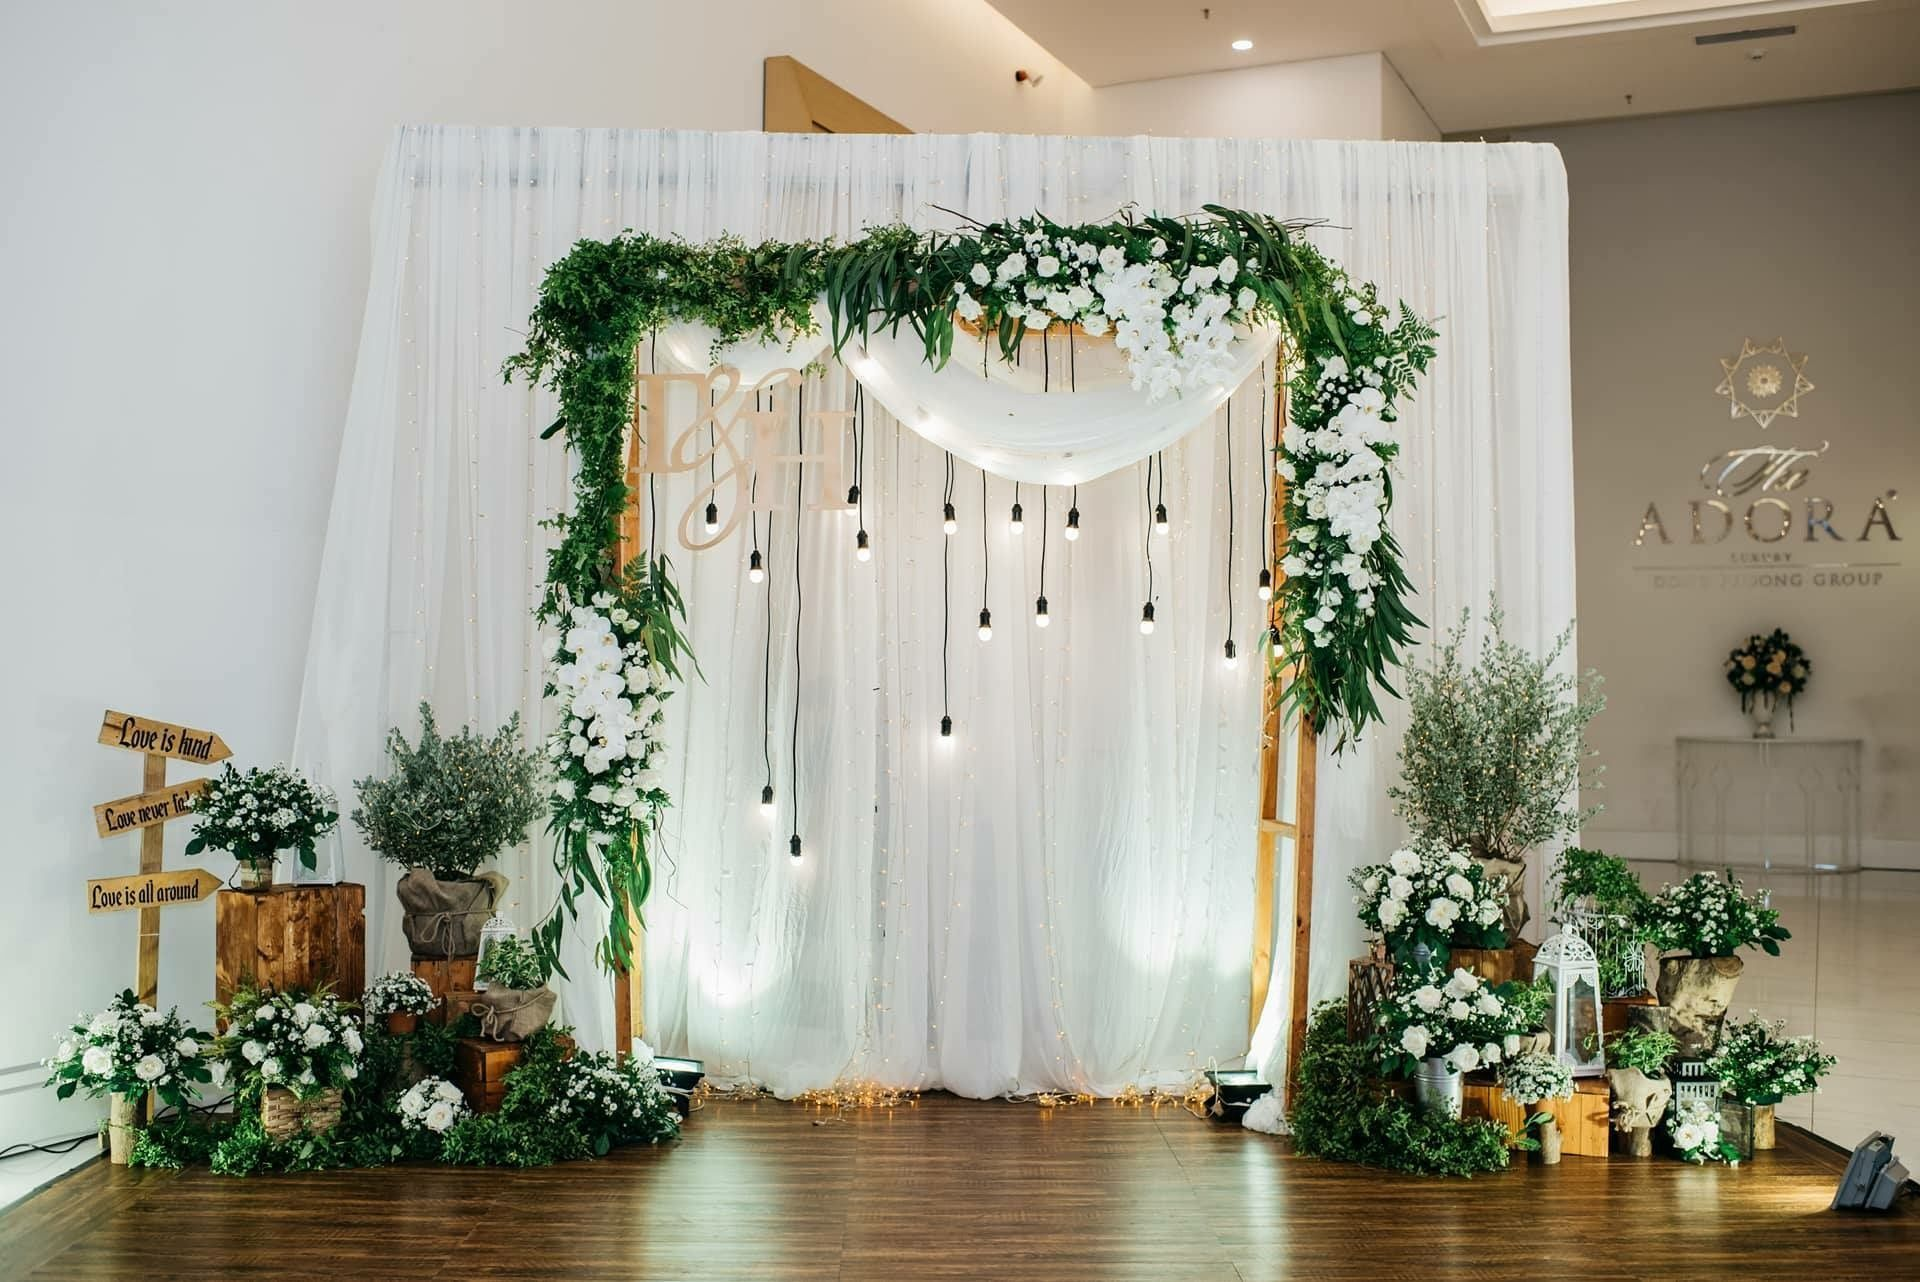 christmas background in 2020 rustic wedding backdrops wedding ceremony backdrop wedding decorations rustic wedding backdrops